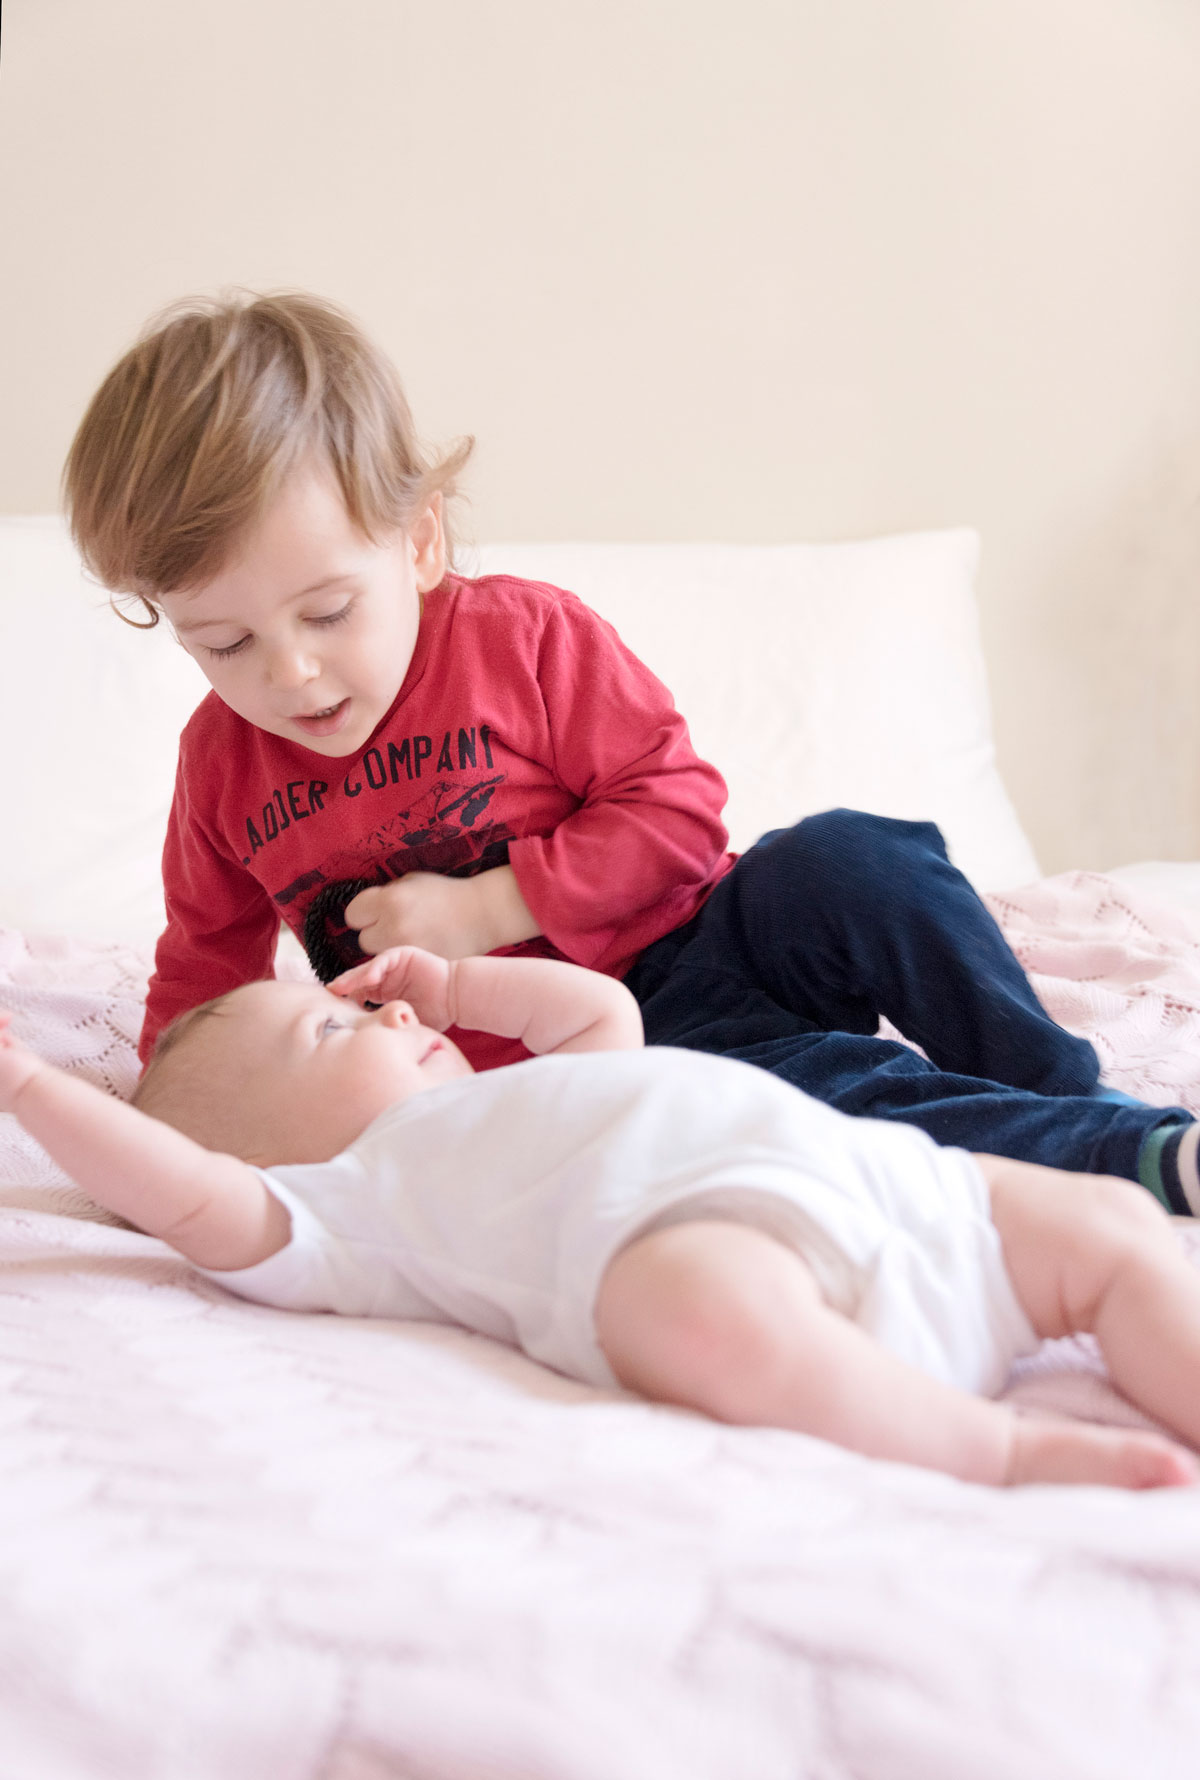 Newborn baby girl playing on a pink blanket with her brother